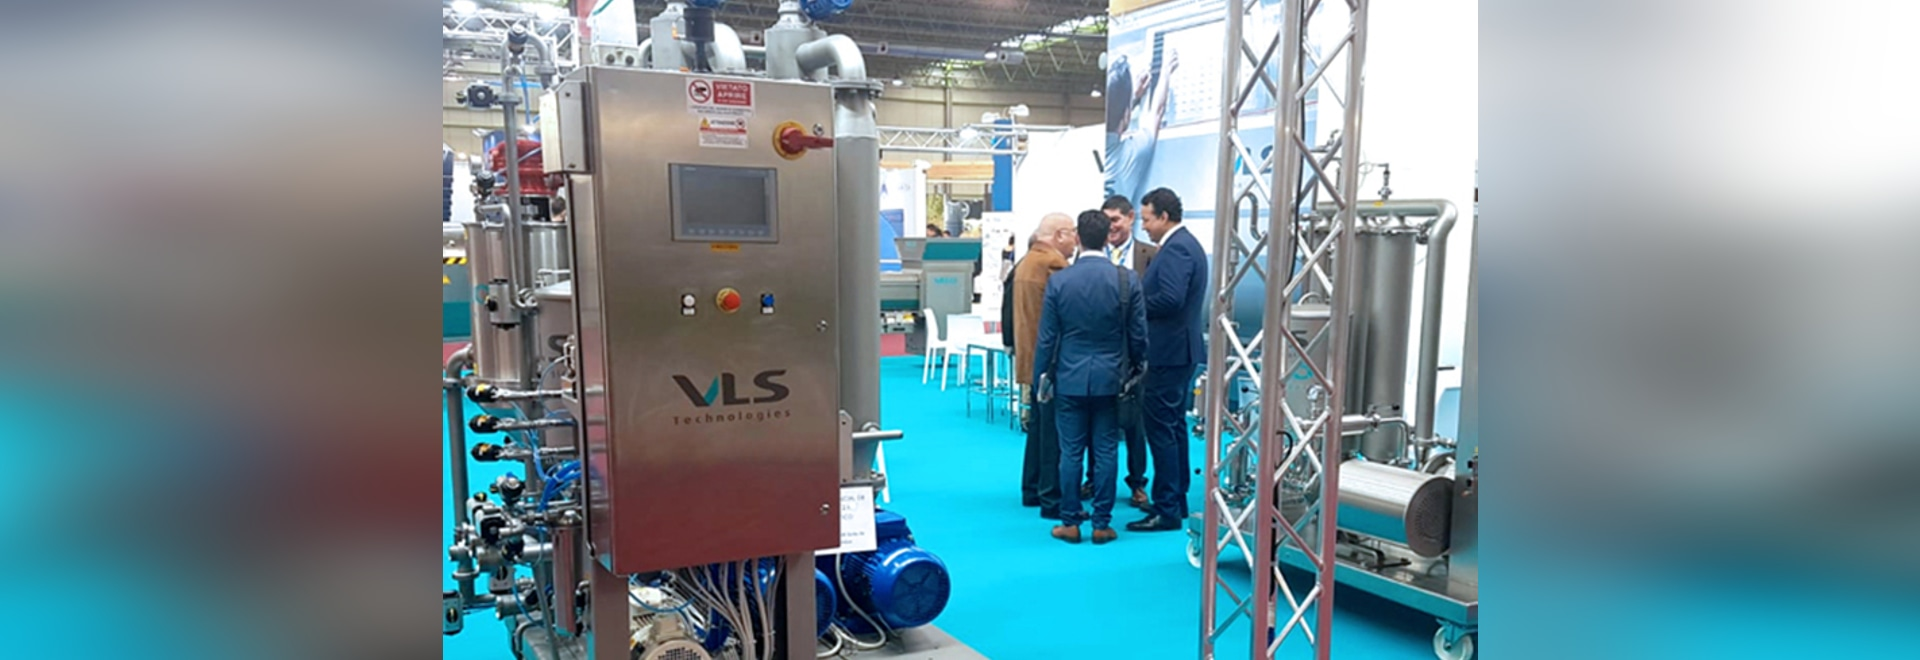 VLS Technologies at Enomaq 2019: the report of our participation